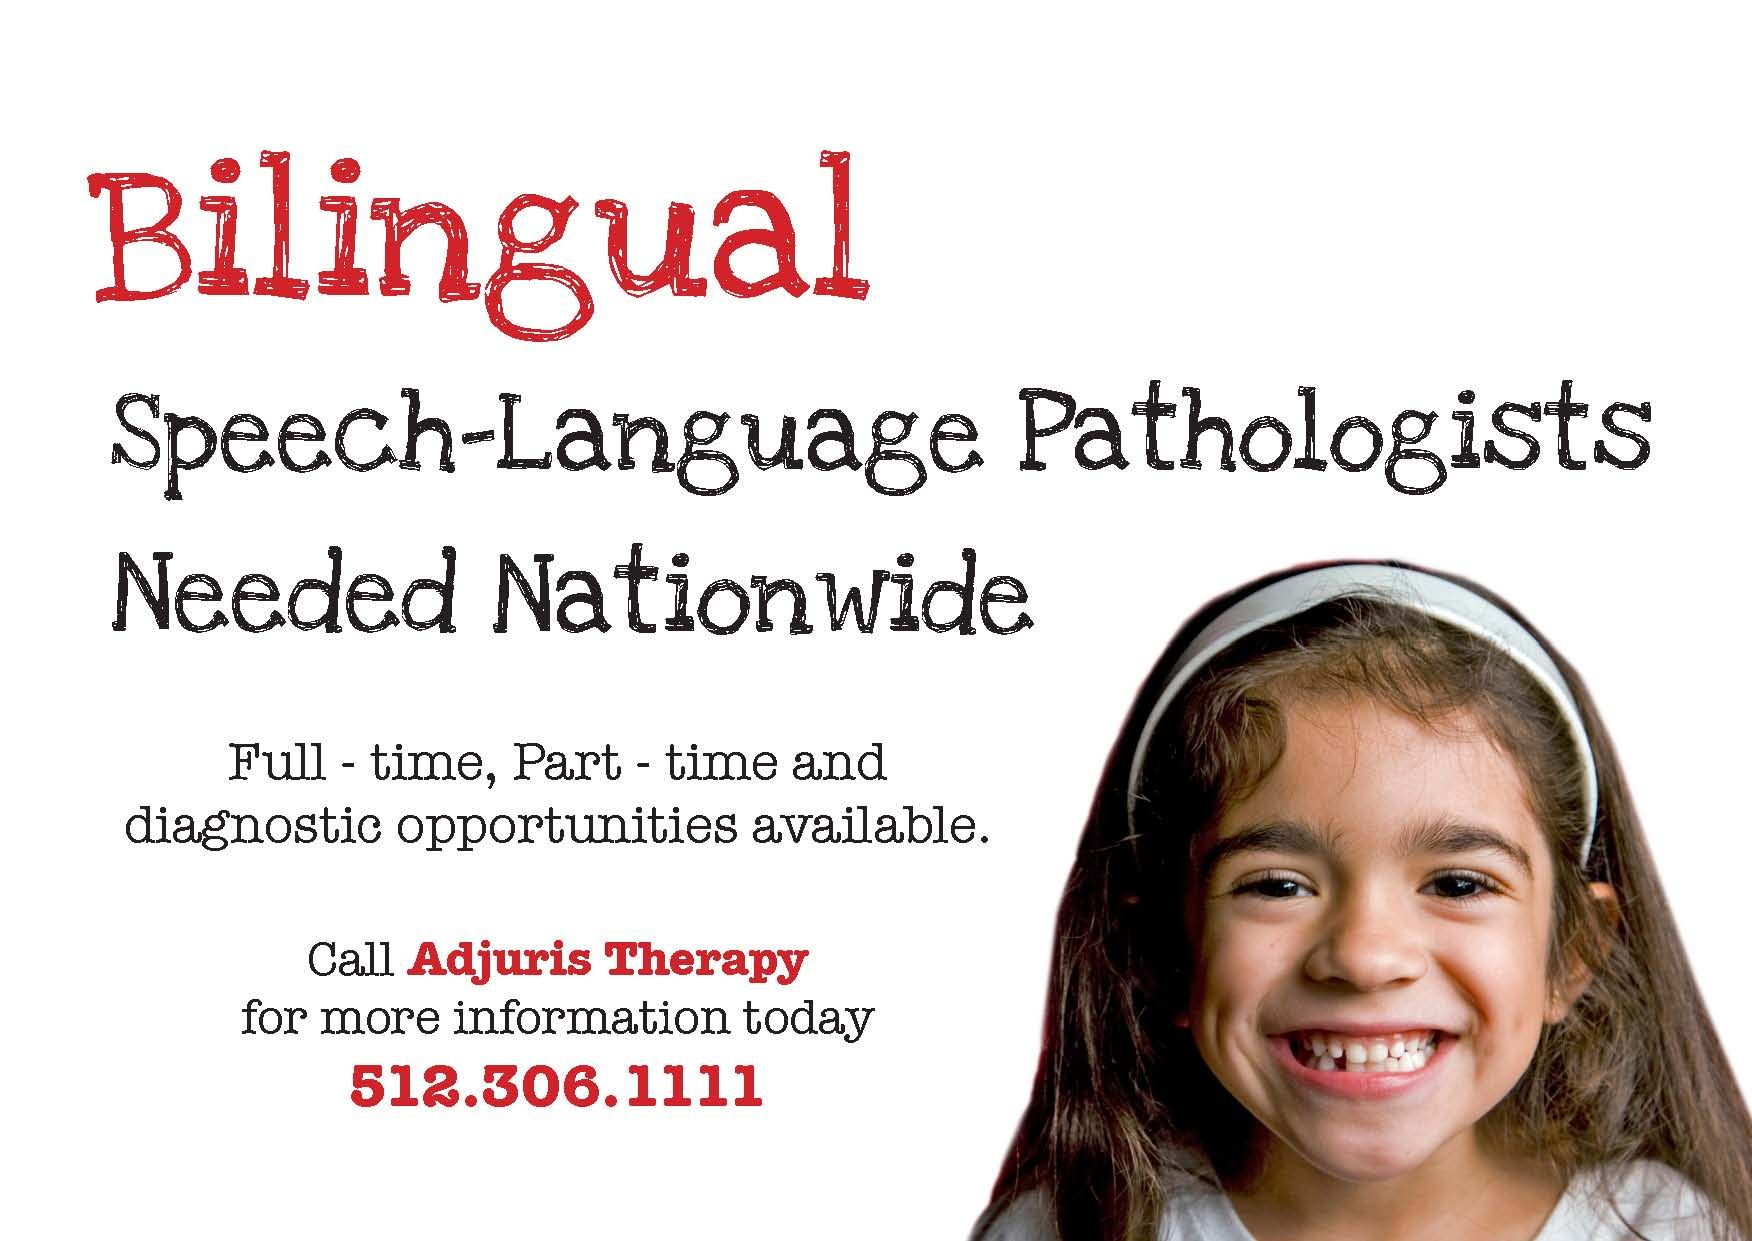 This is the front of a postcard sent to bilingual speech-language pathologist who were interested working within an educational setting.